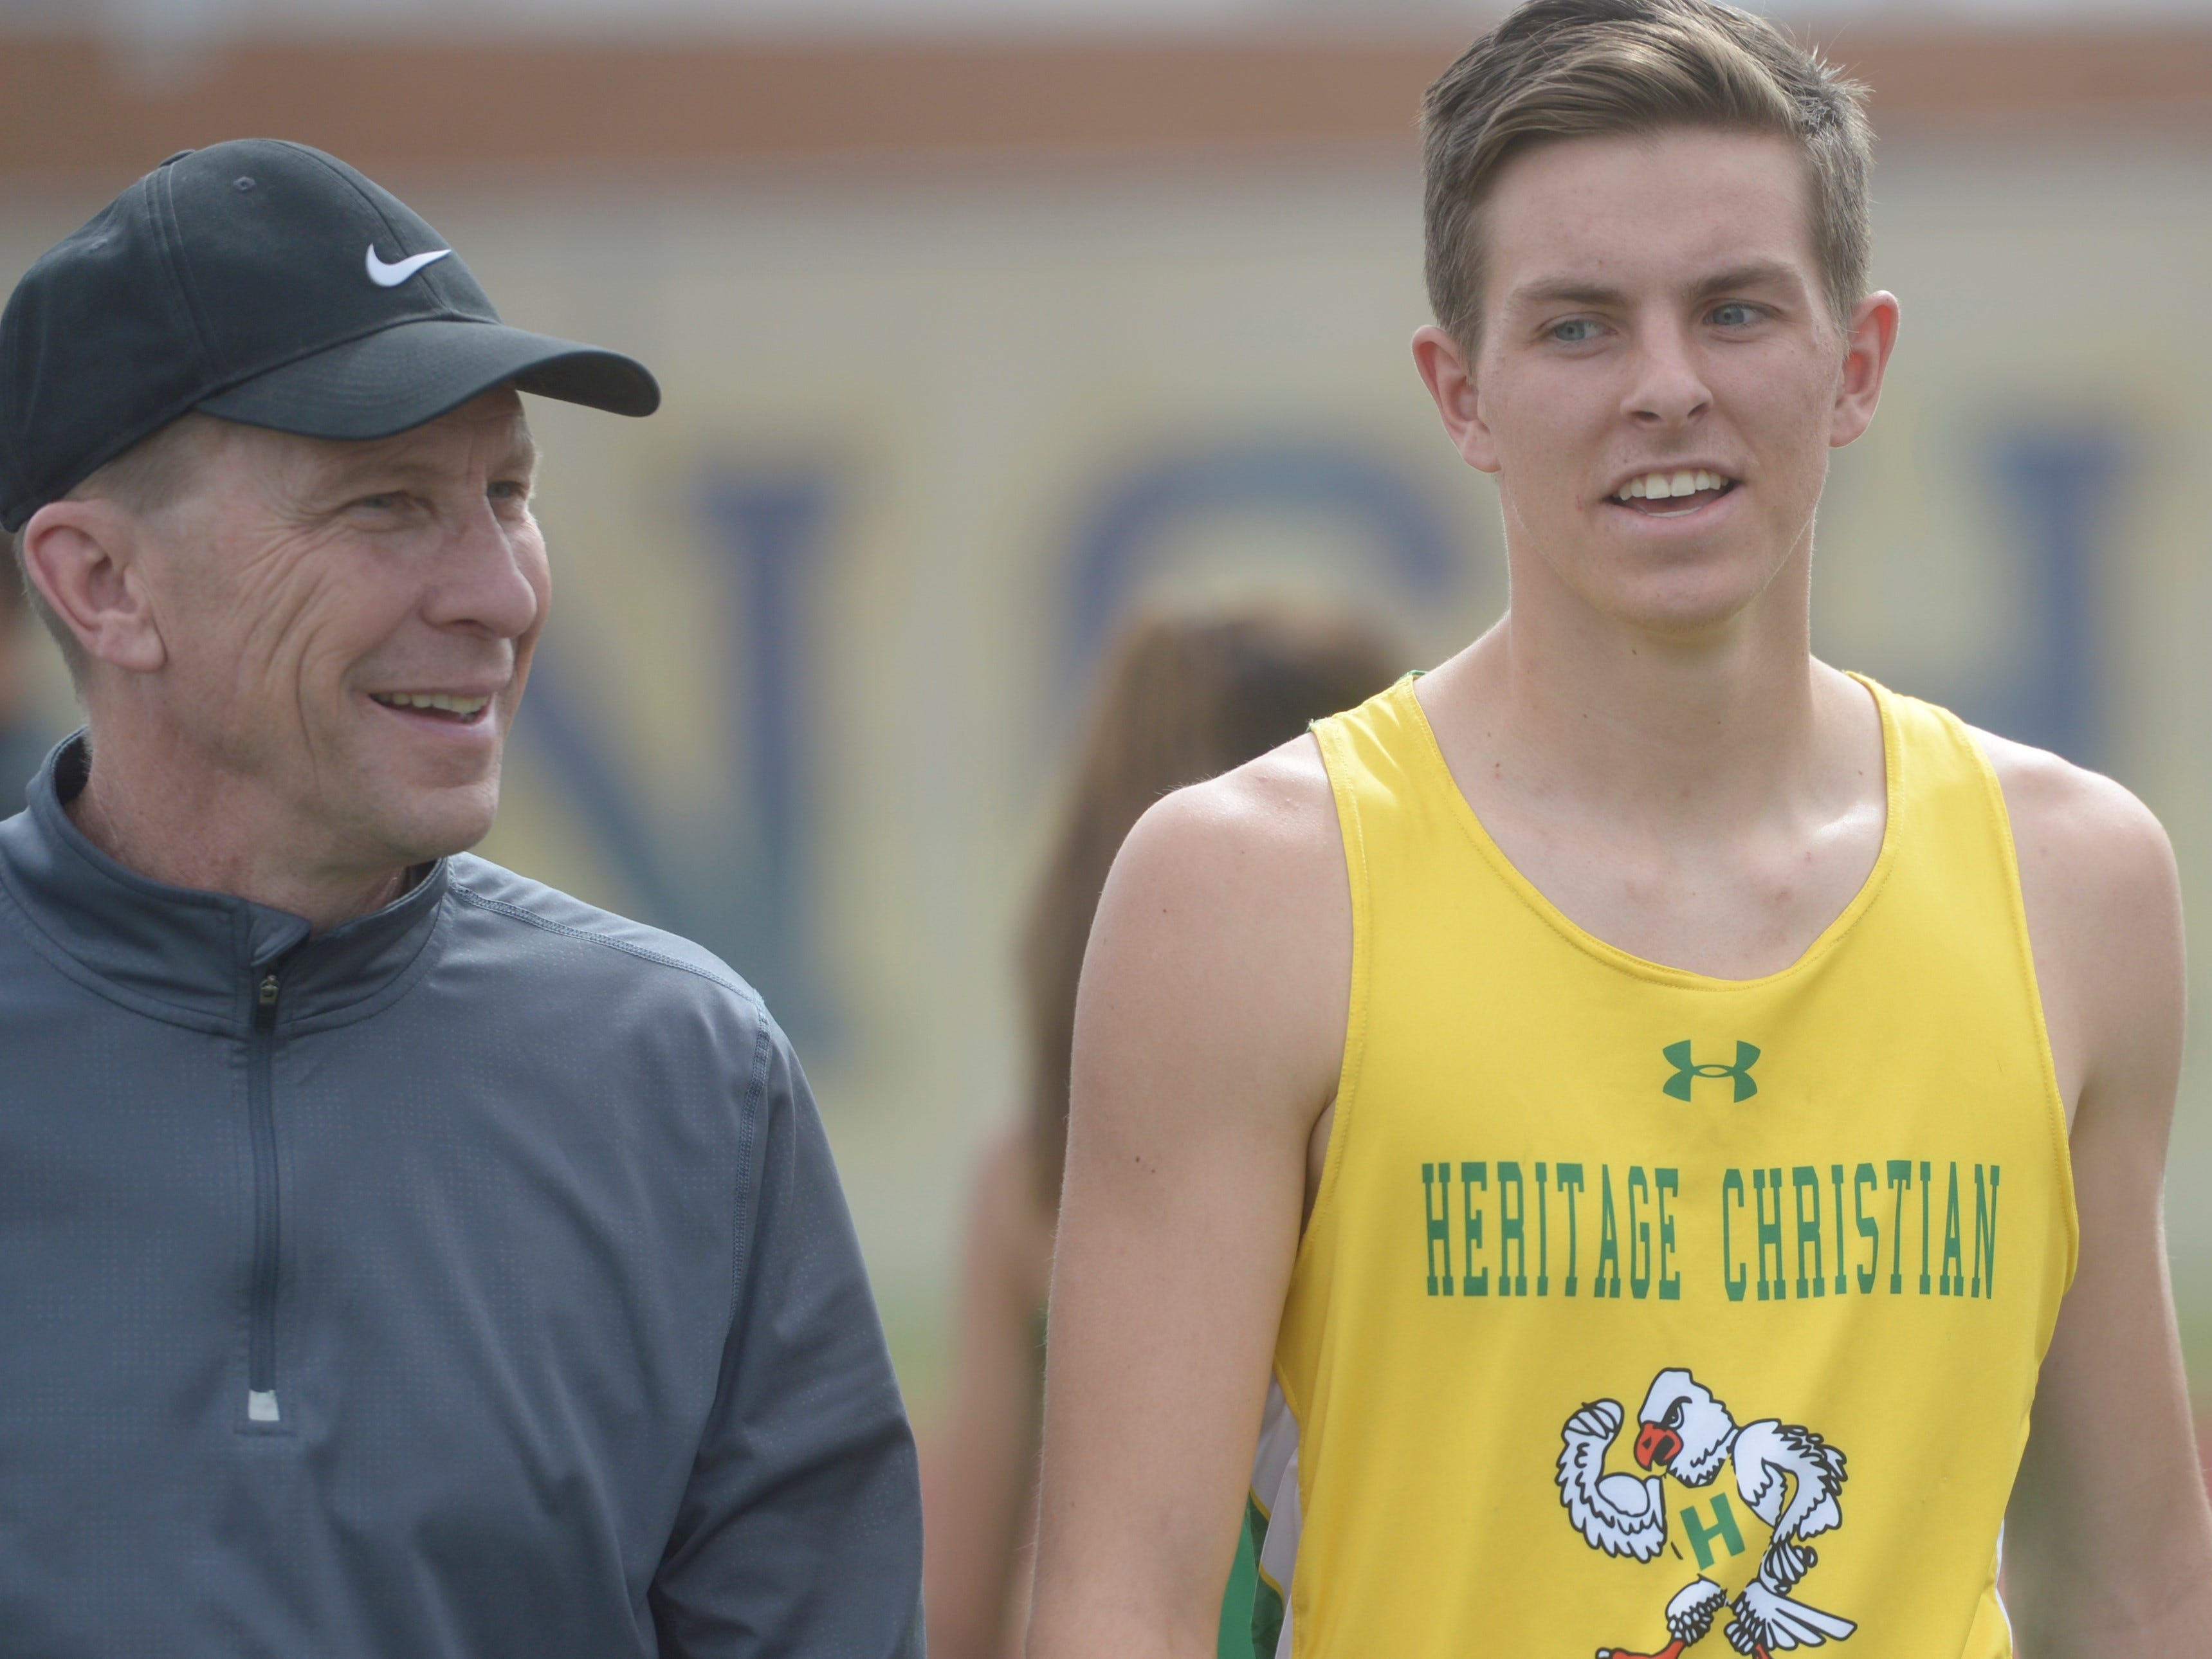 Heritage Christian's Josiah Bowsher, right, talks with athletic director Kevin McGinley at the Fort Collins city meet at French Field on Tuesday, April 9, 2019.